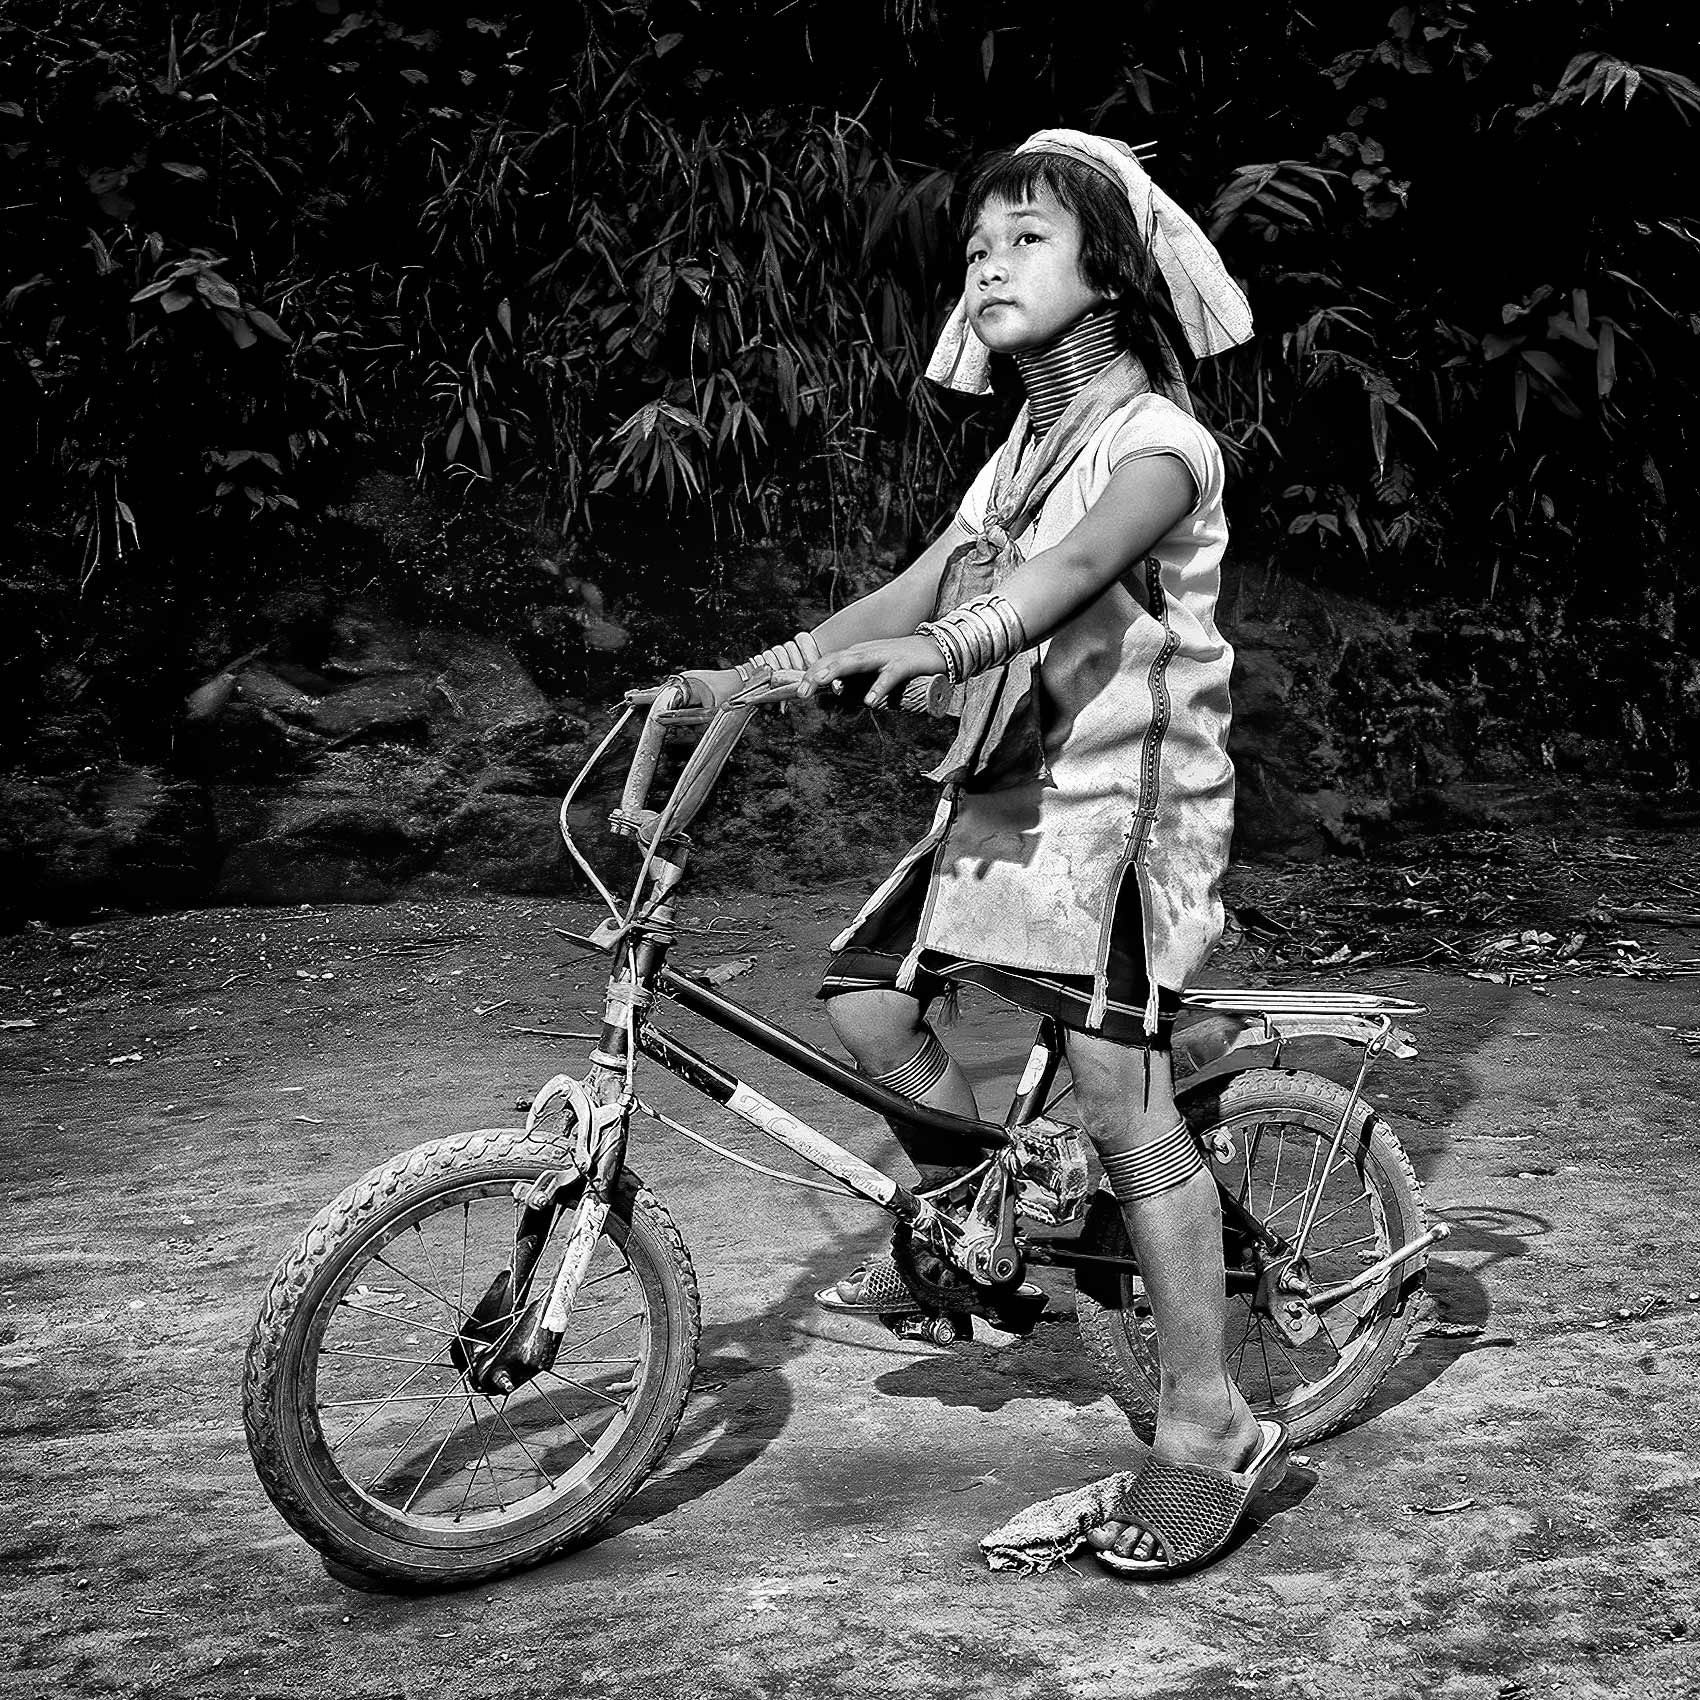 a-young-girl-from-the-karen-tribe-on-her-bicycle-in-northern-thailand